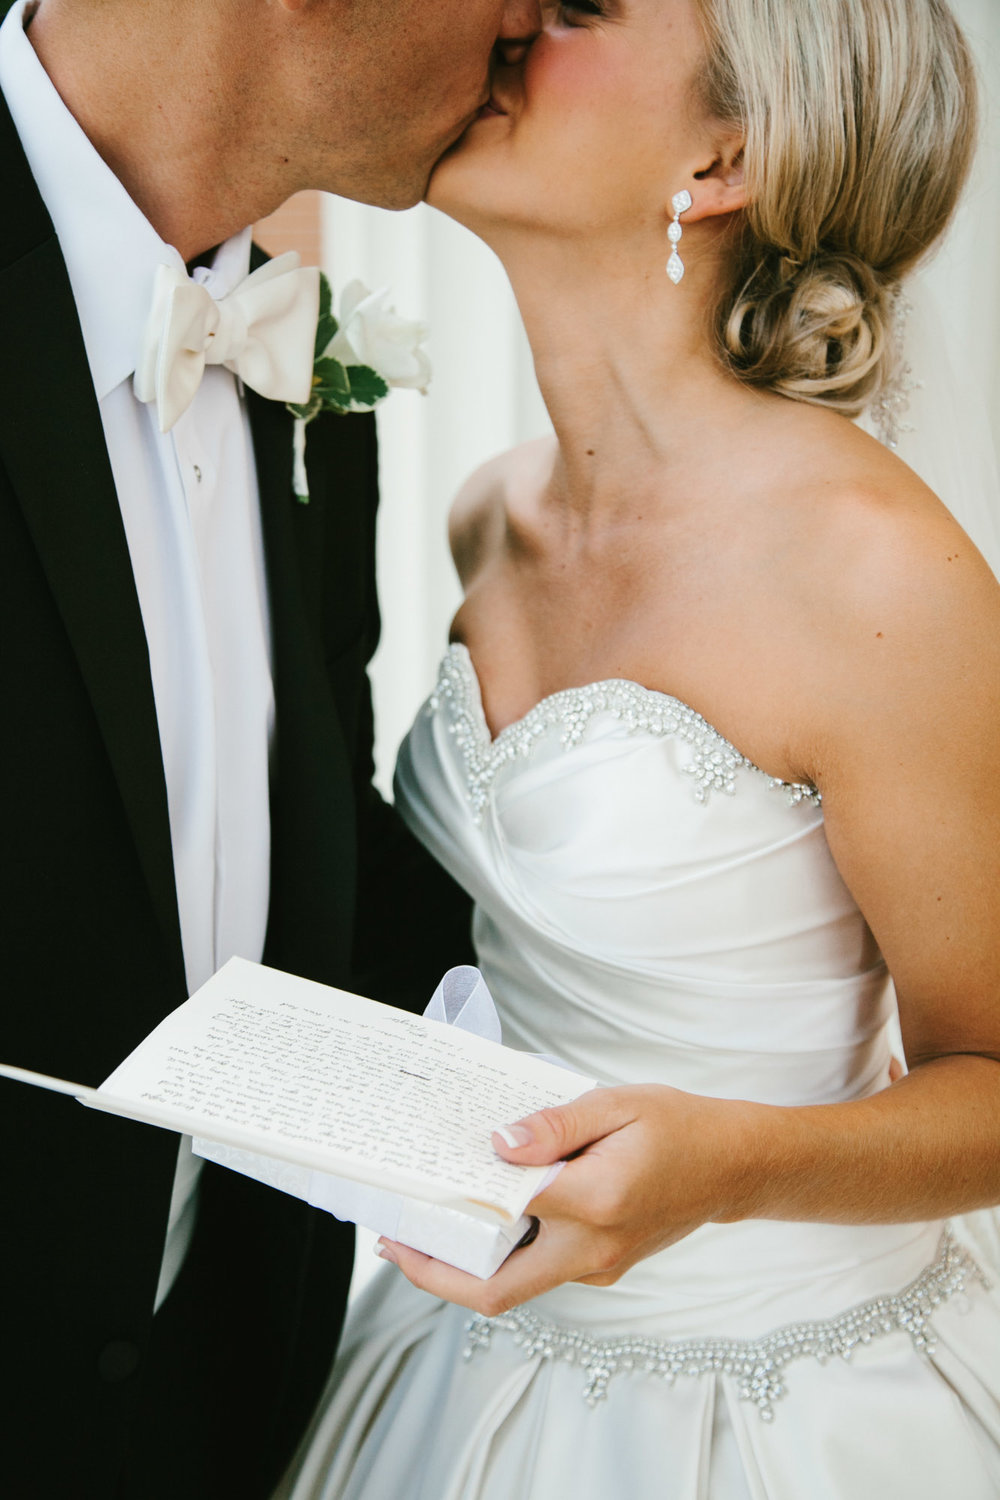 Bride and groom letter